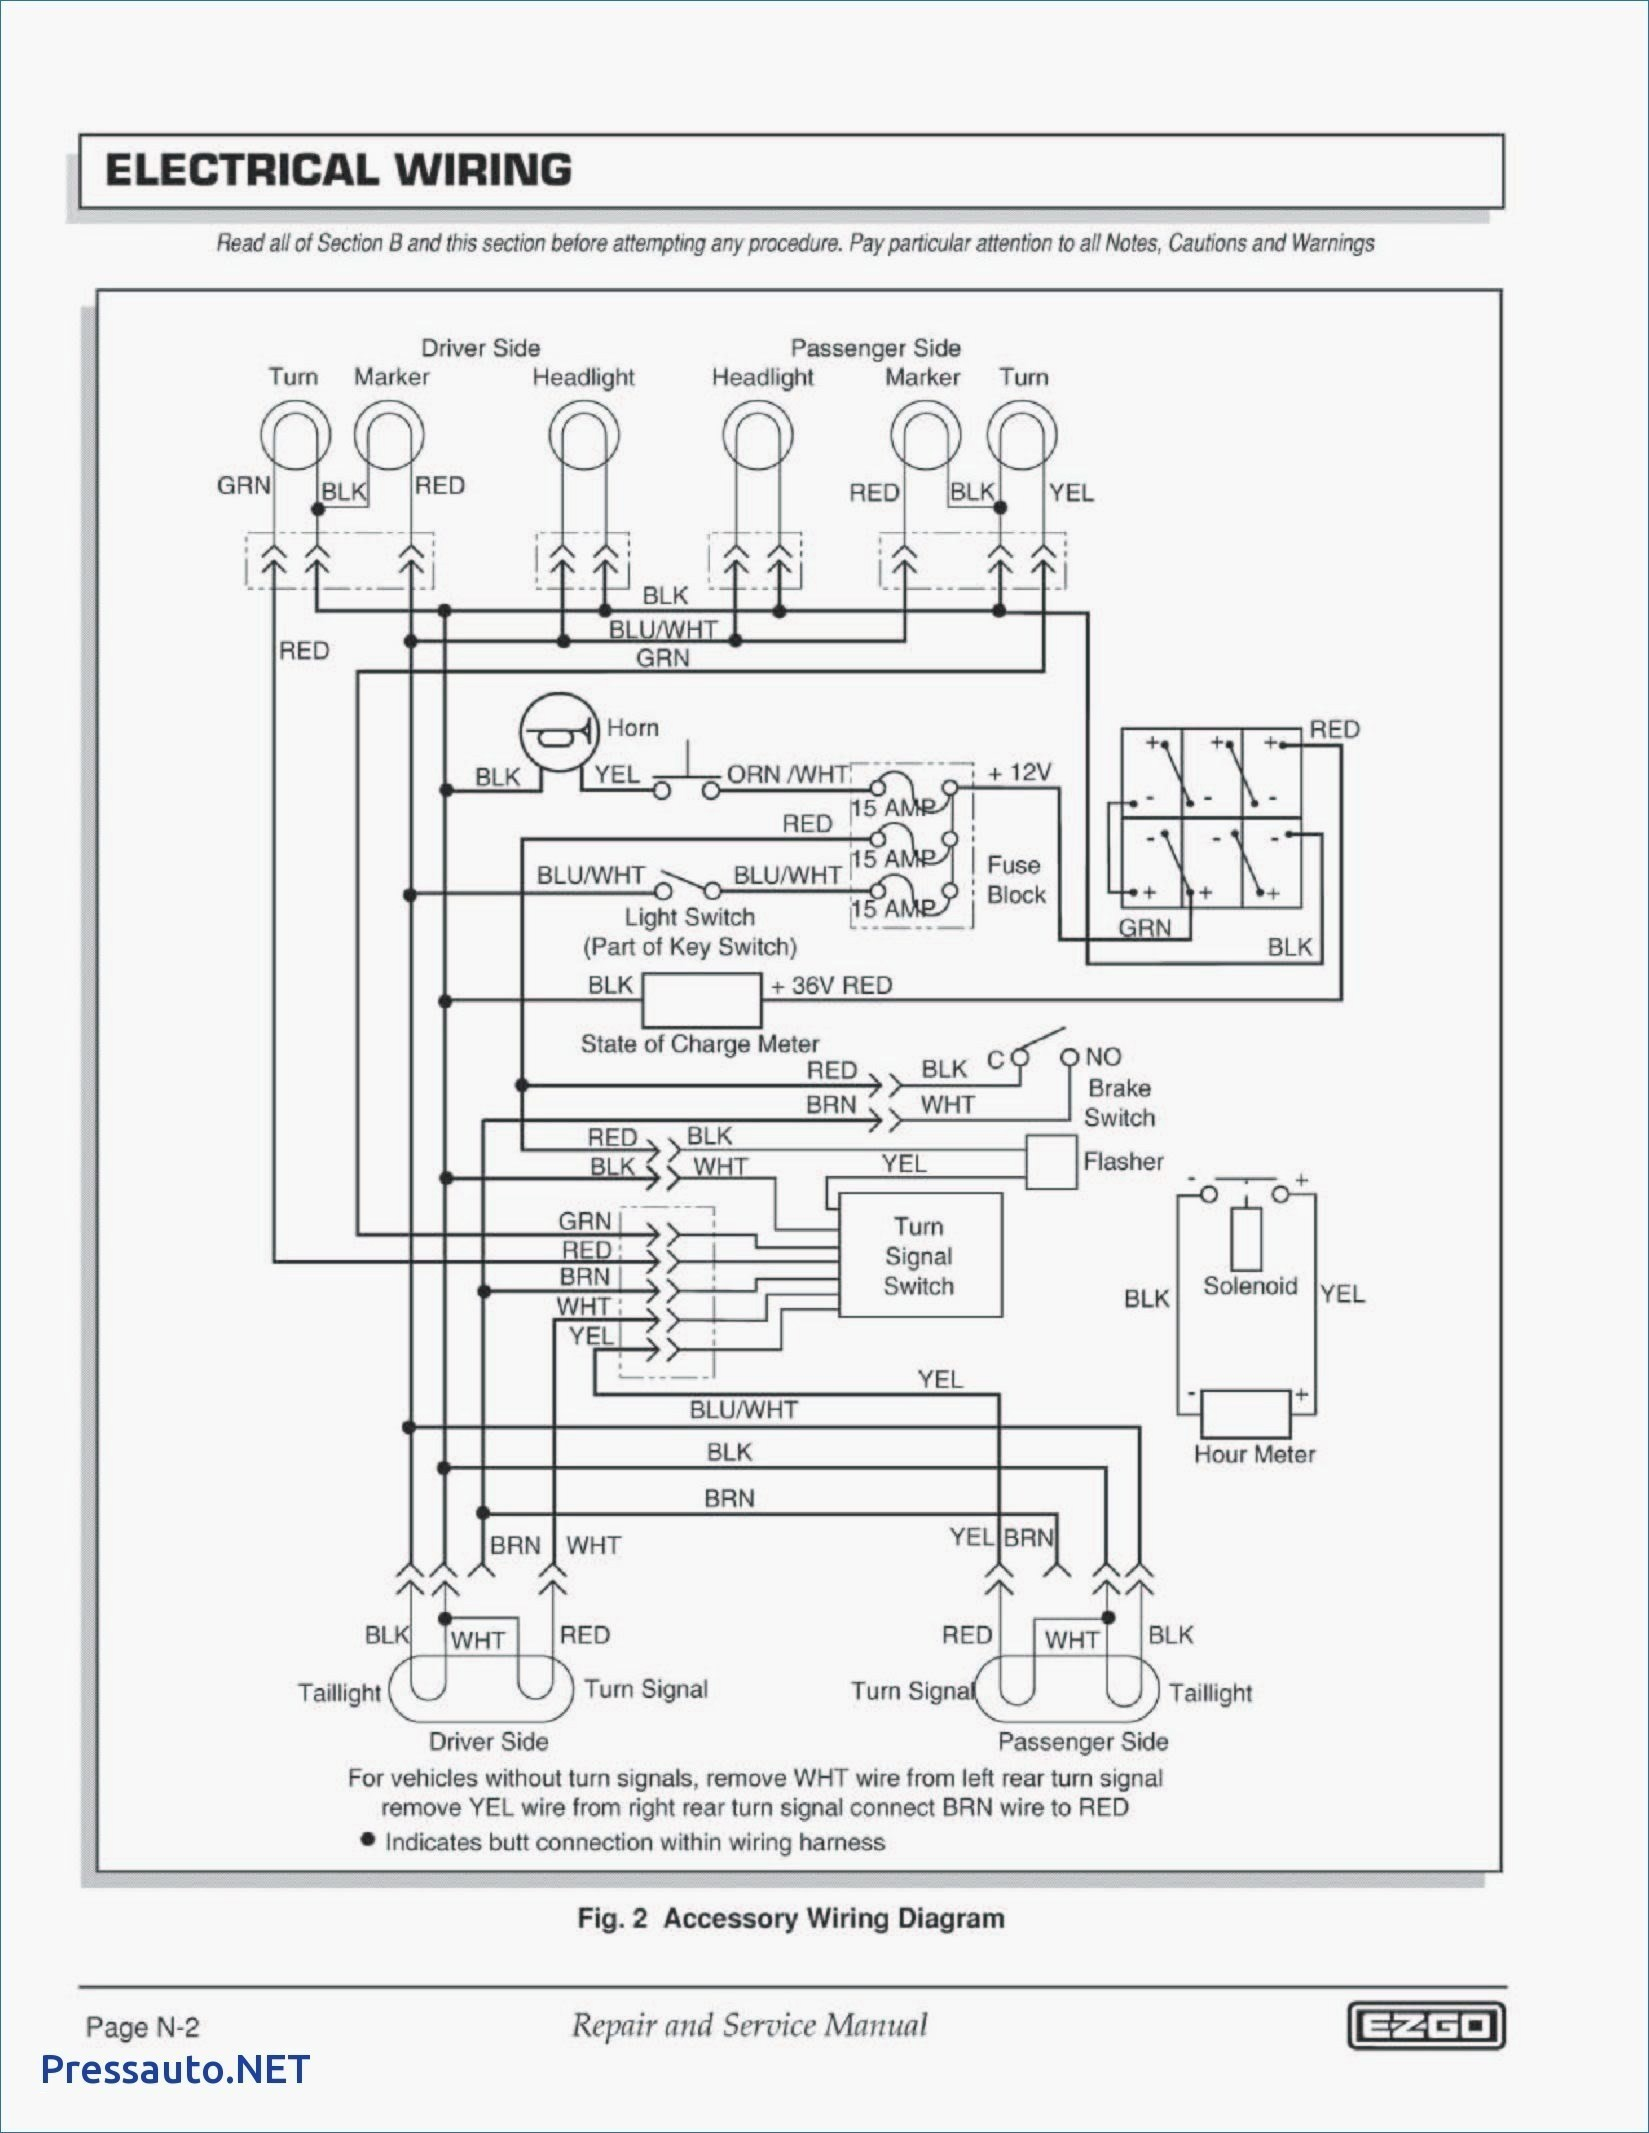 hight resolution of wrg 4948 1990 ez go golf cart wiring diagram11 top 1990 ezgo wiring diagram basic